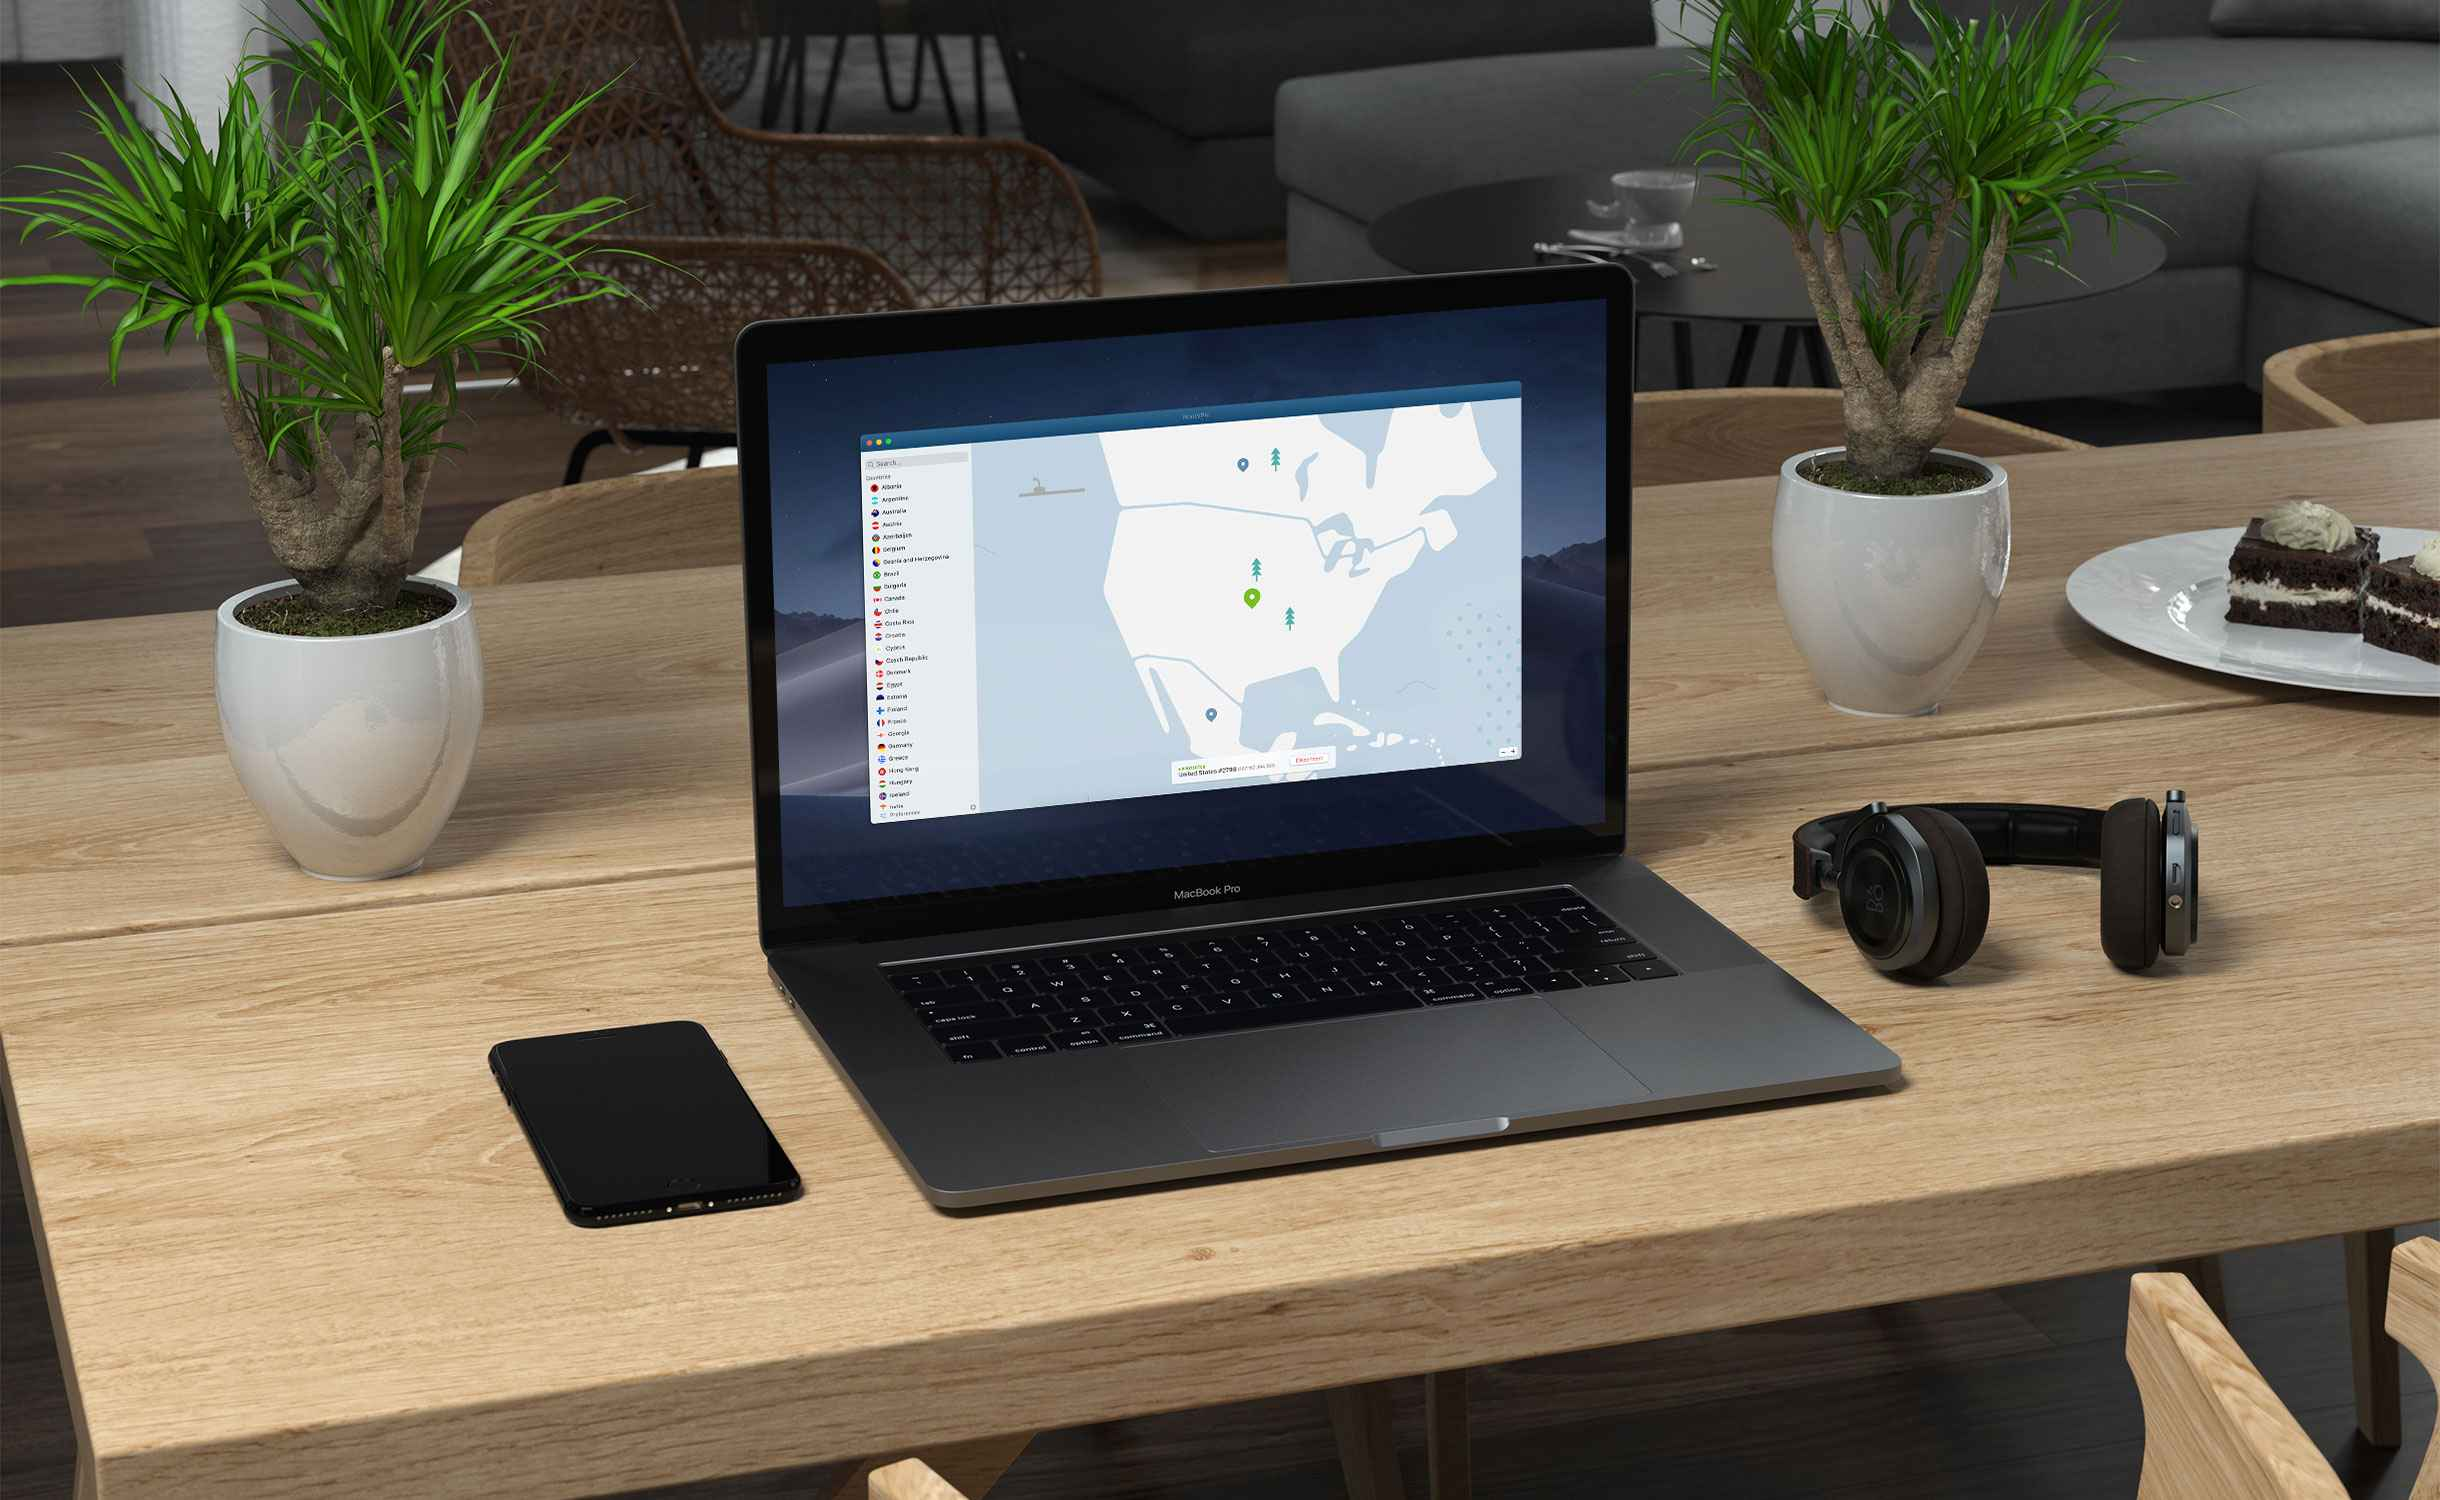 nordvpn-tool-for-remote-work